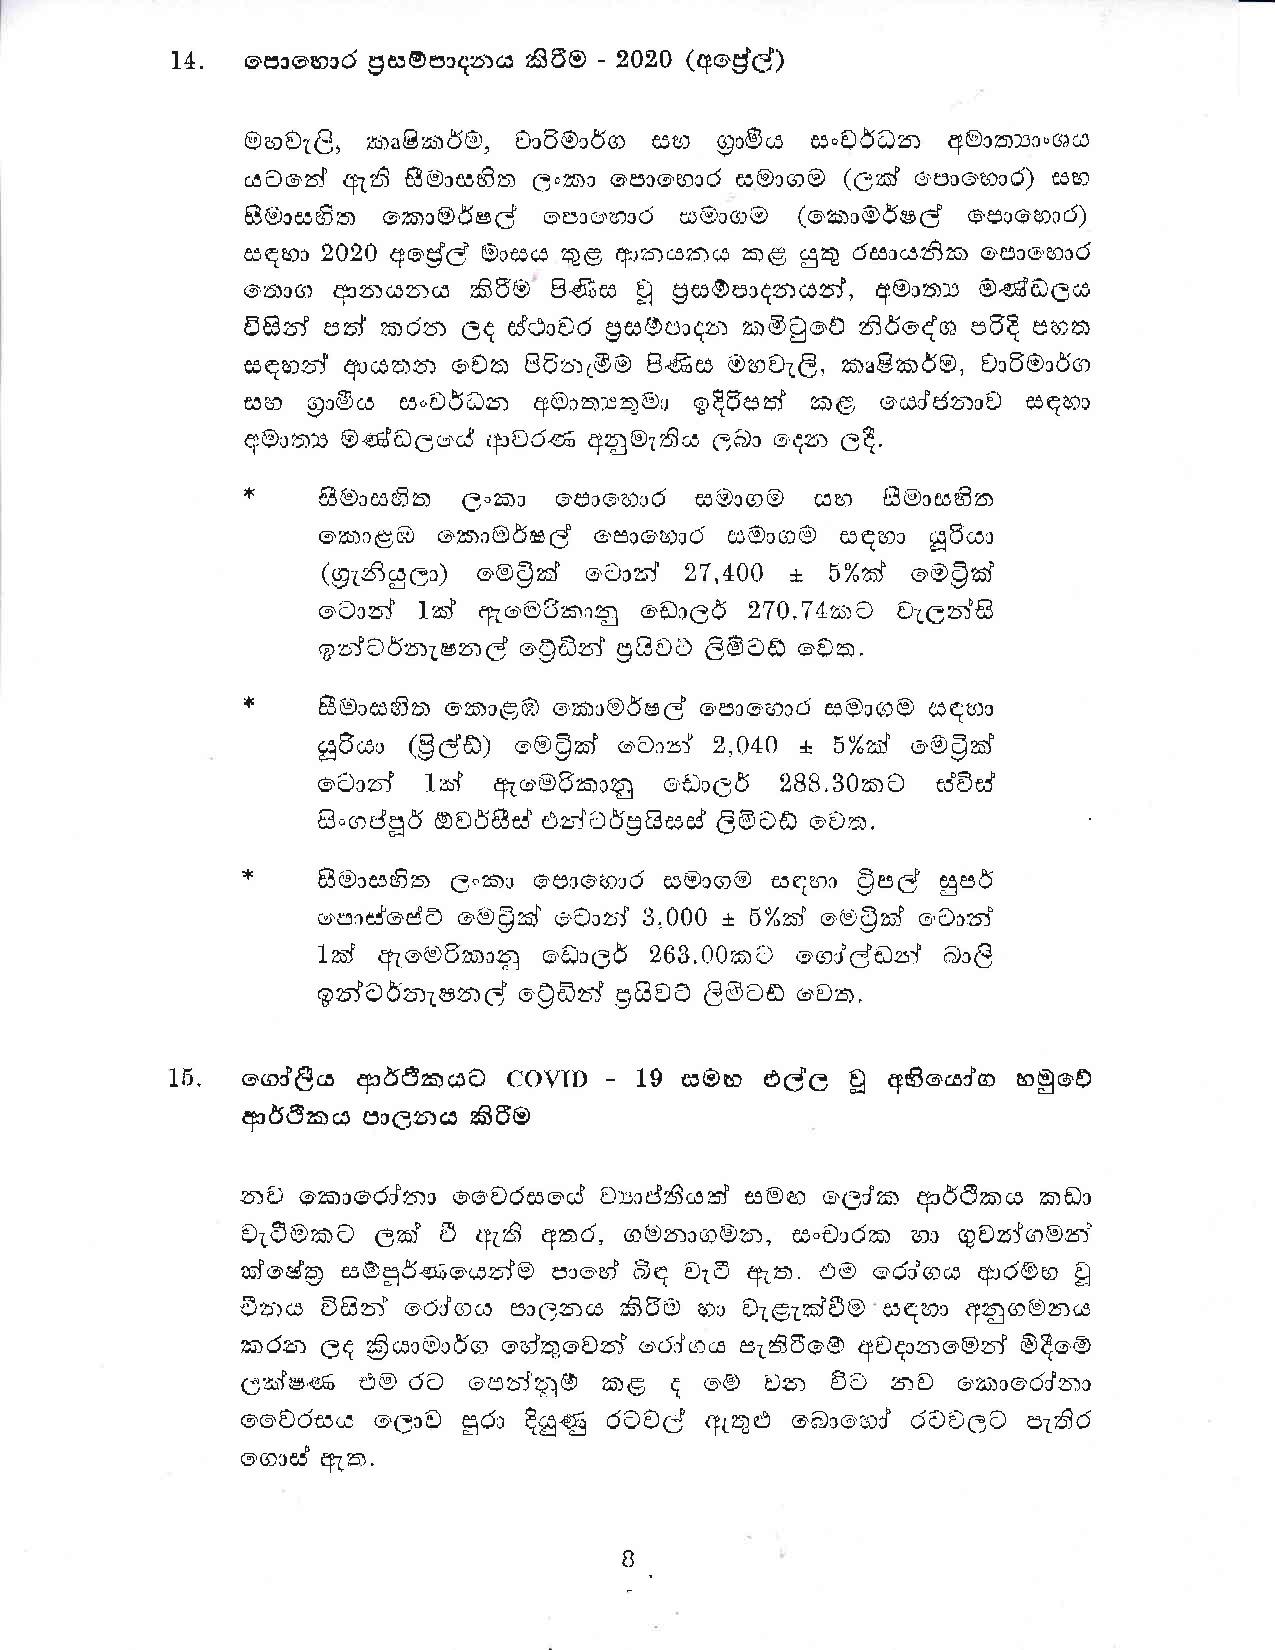 Cabinet Decision on sinhala 18.03.2020 page 008